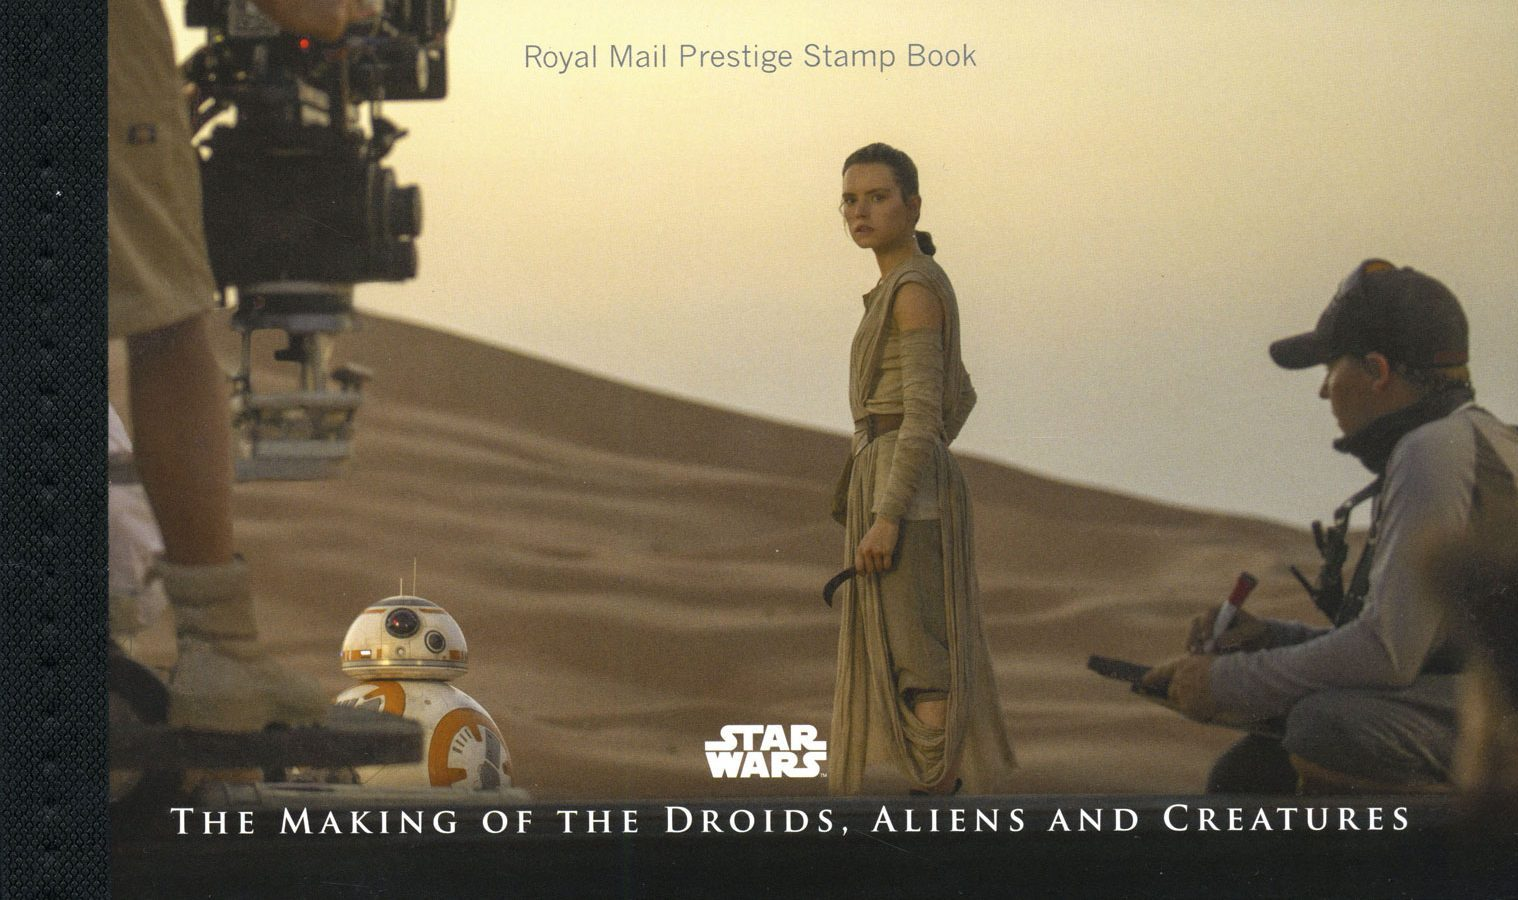 The front cover of the Prestige Stamp book for the Star Wars issue.